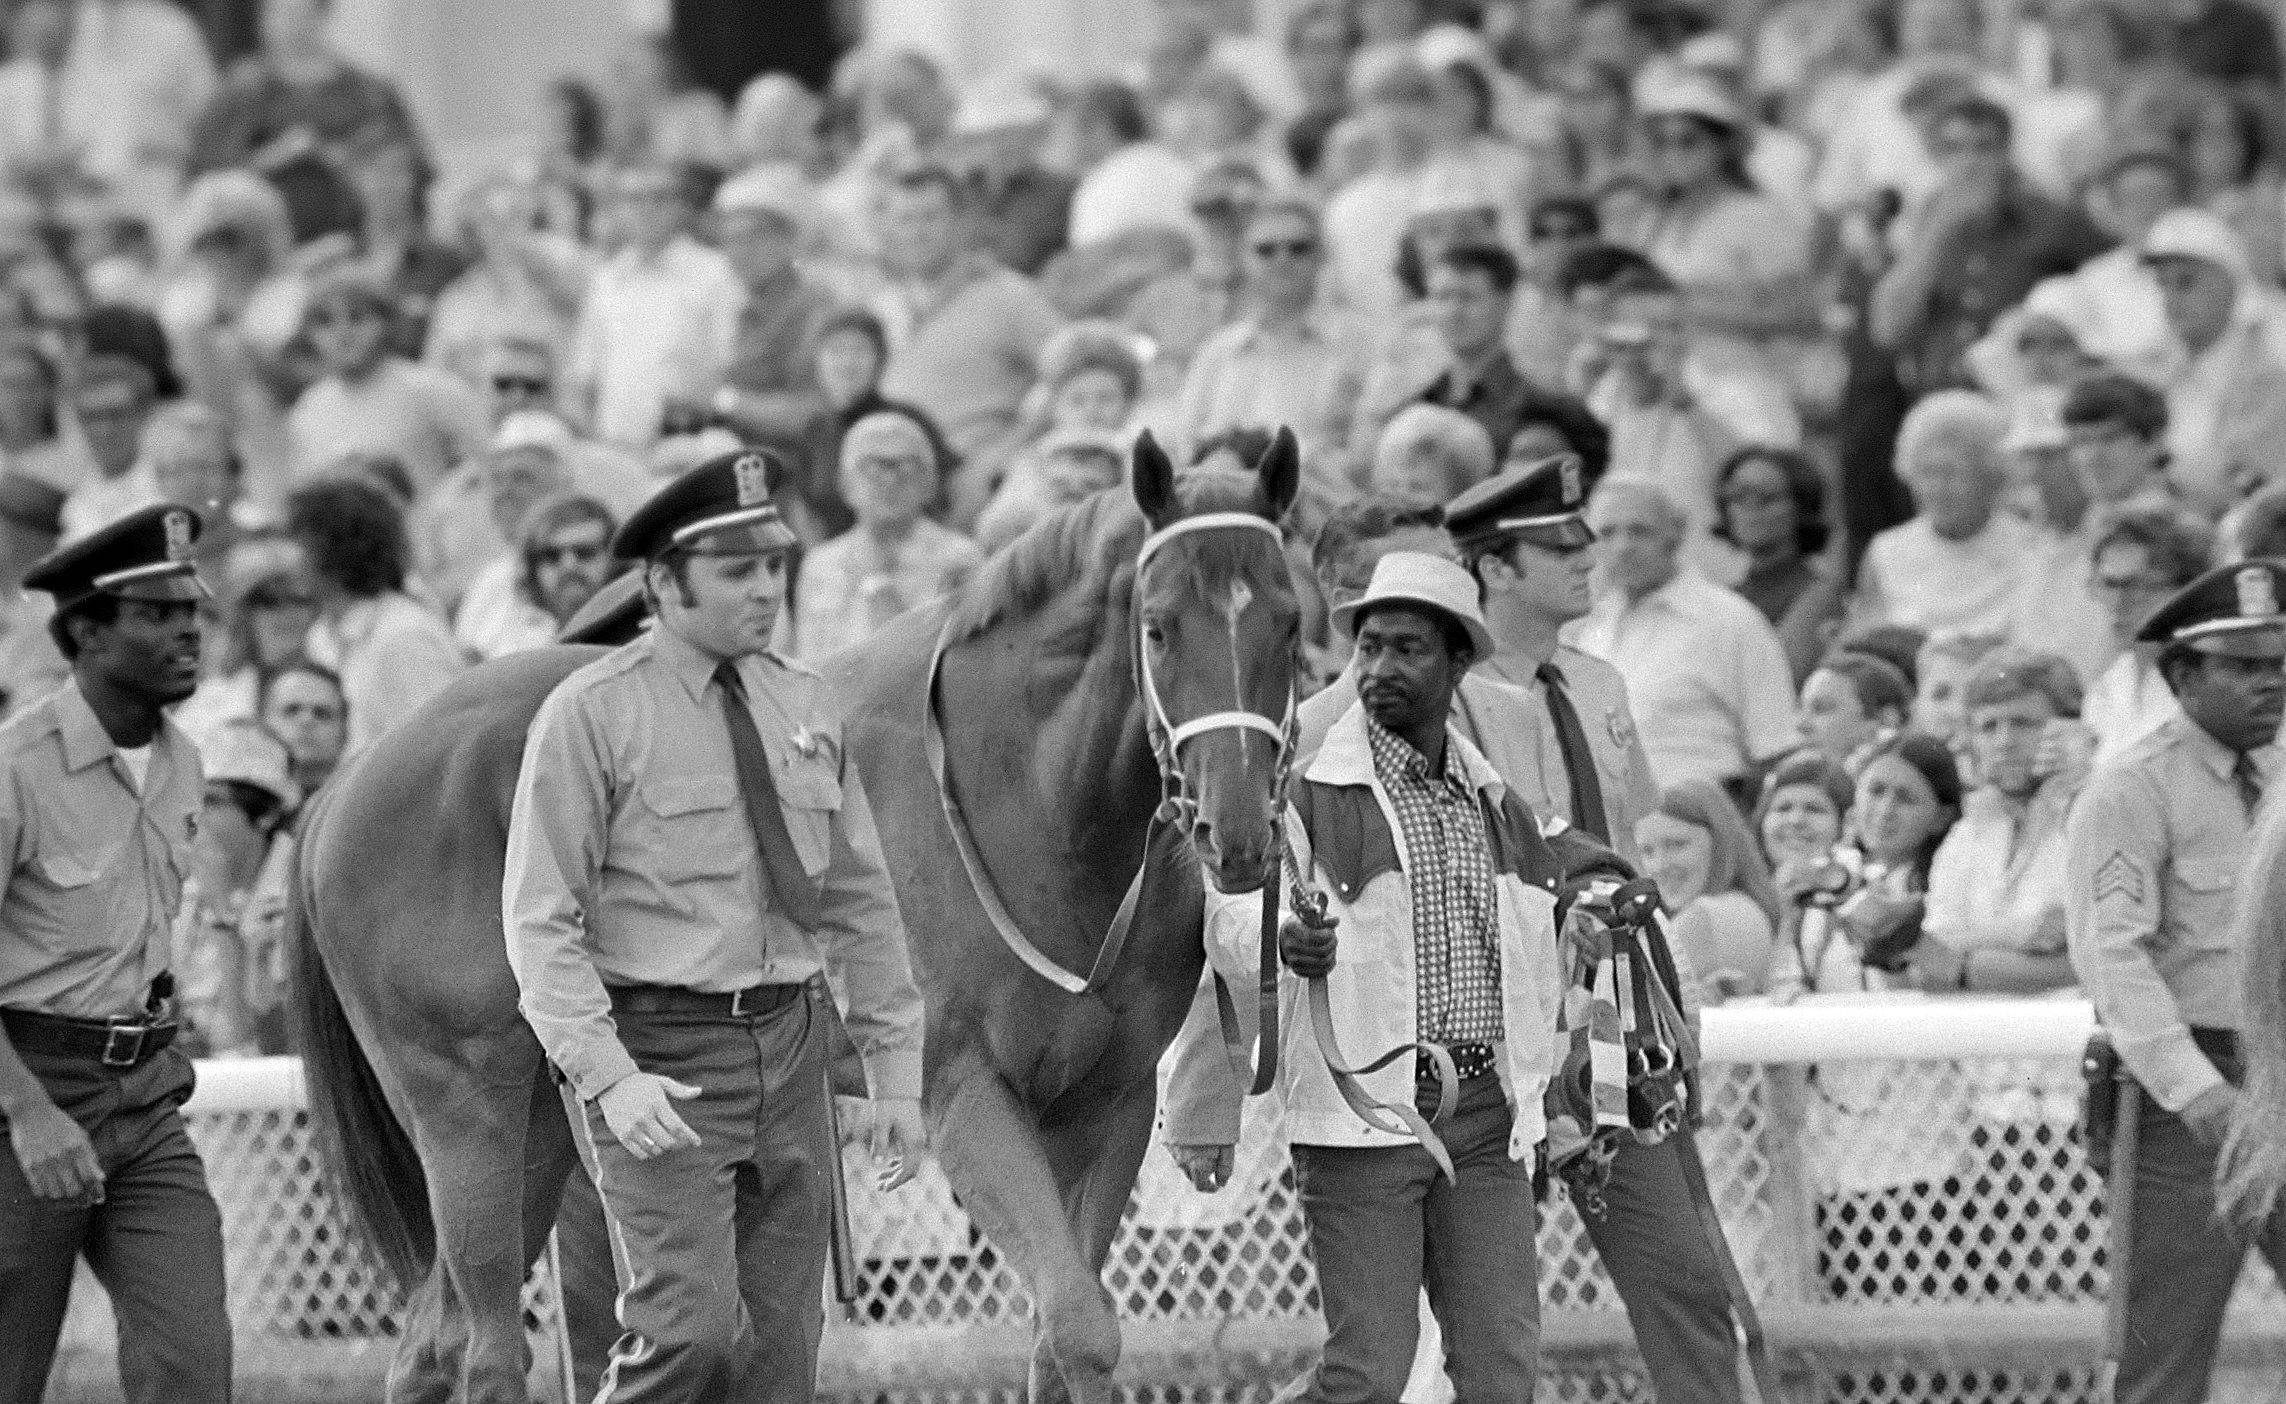 The legendary racehorse Secretariat visits Arlington Park for the Arlington Invitational on June 30, 1973. Arlington, some insiders say, no longer draws top horses because of the small purse sizes.